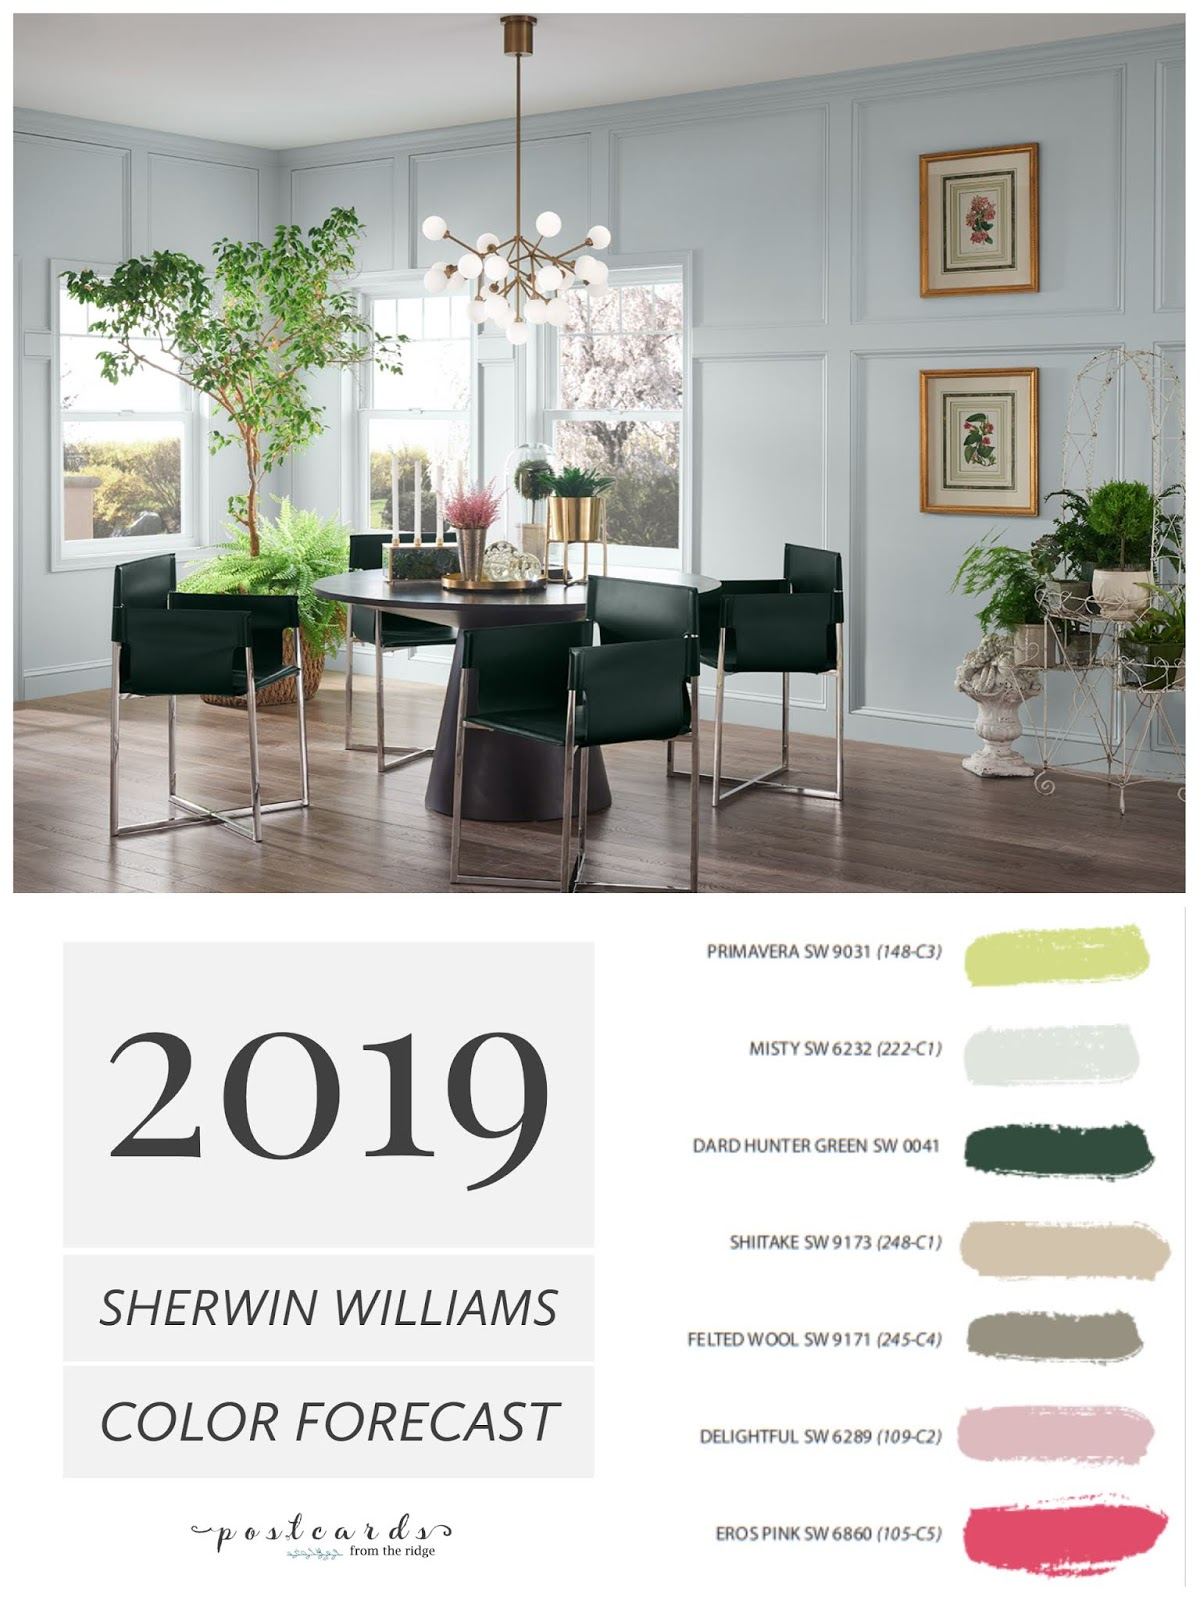 2019 Paint Color Forecast From Sherwin Williams Postcards From The